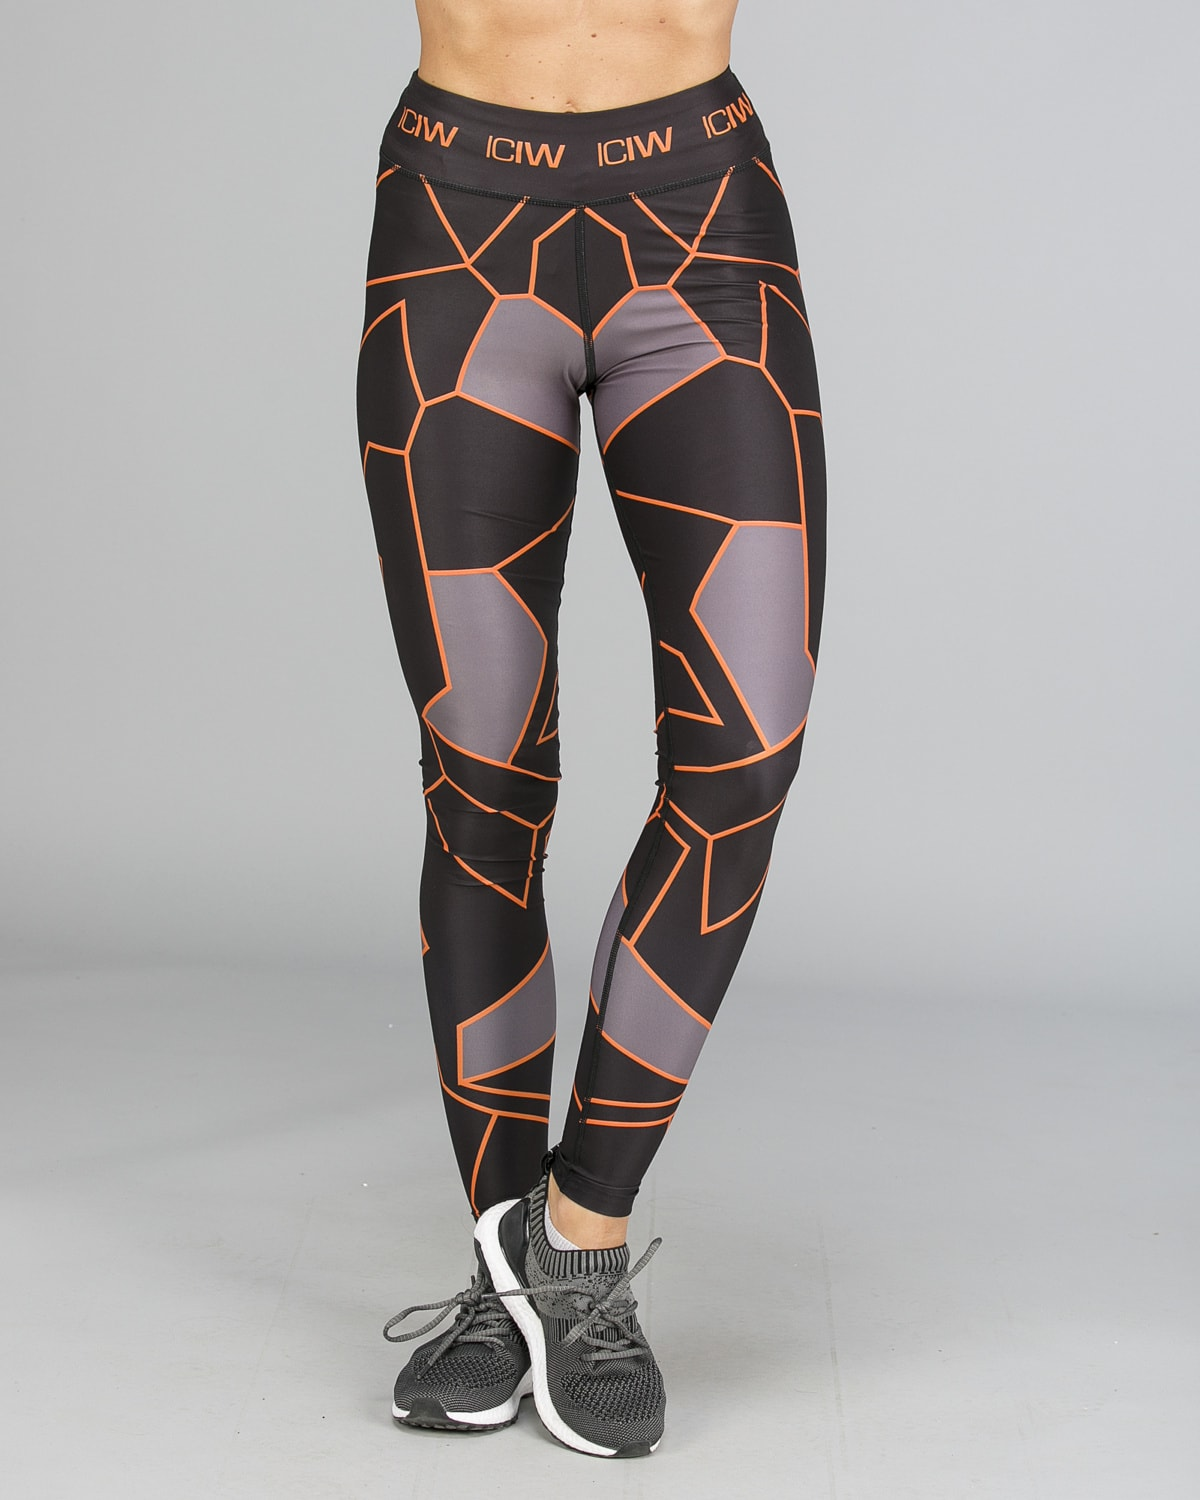 ICANIWILL – Orange Camo Tights g